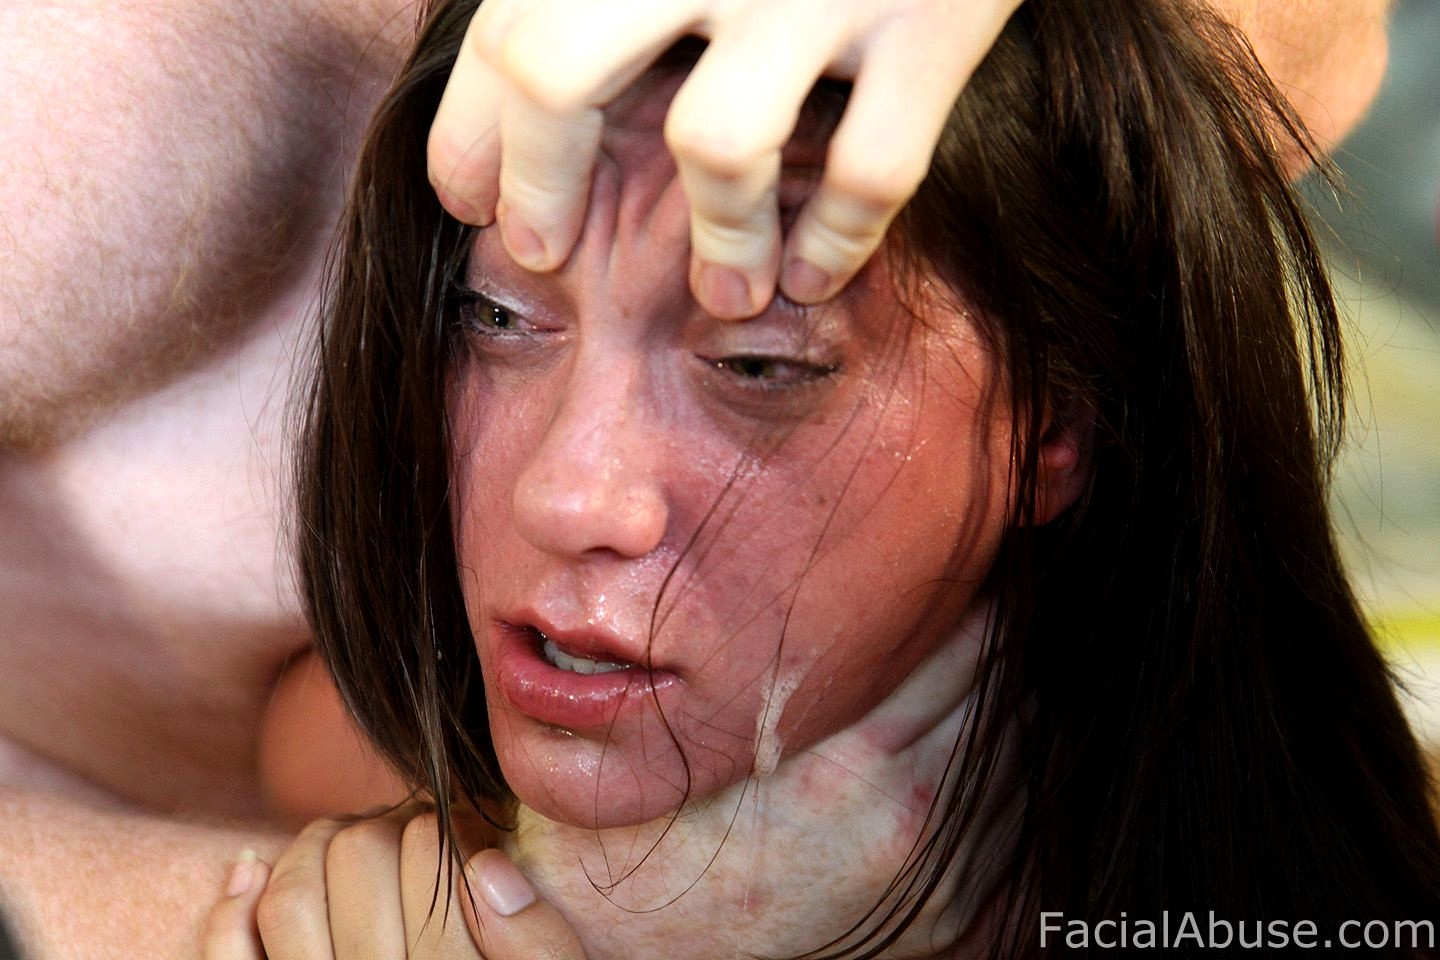 girl-young-girls-exploited-and-abused